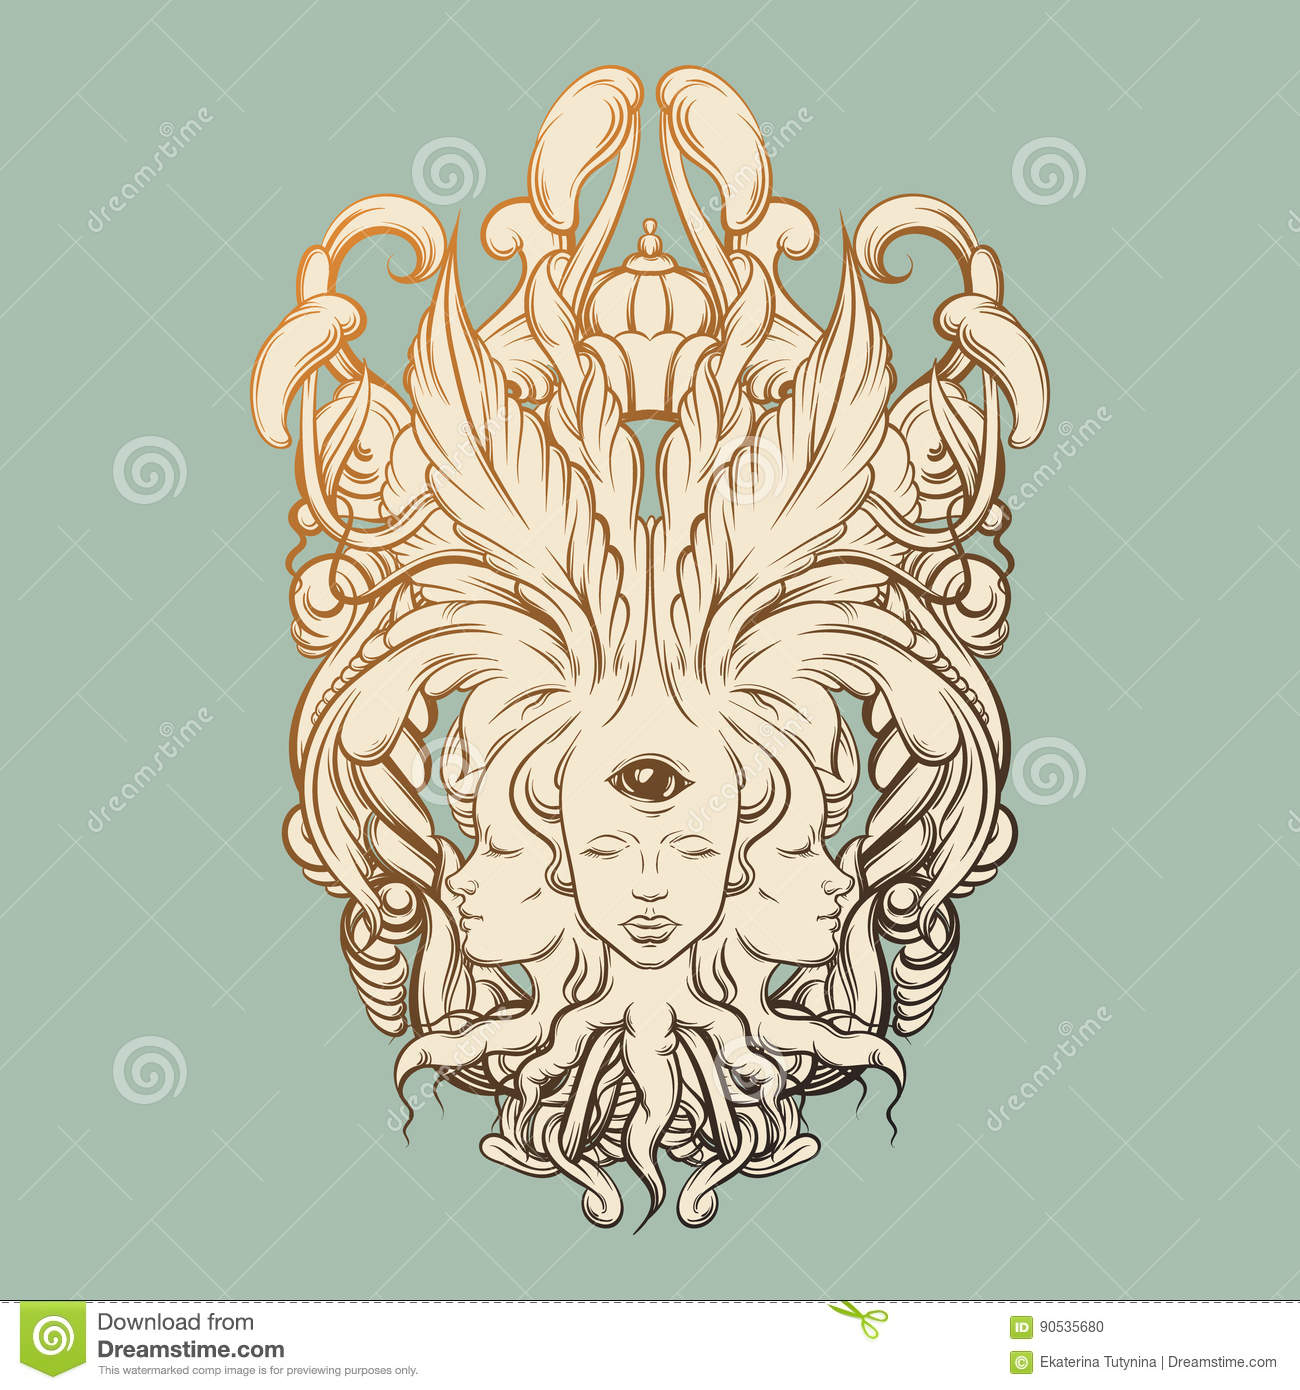 Vector illustration of fortune teller with three heads, eyes, floral baroque frame.